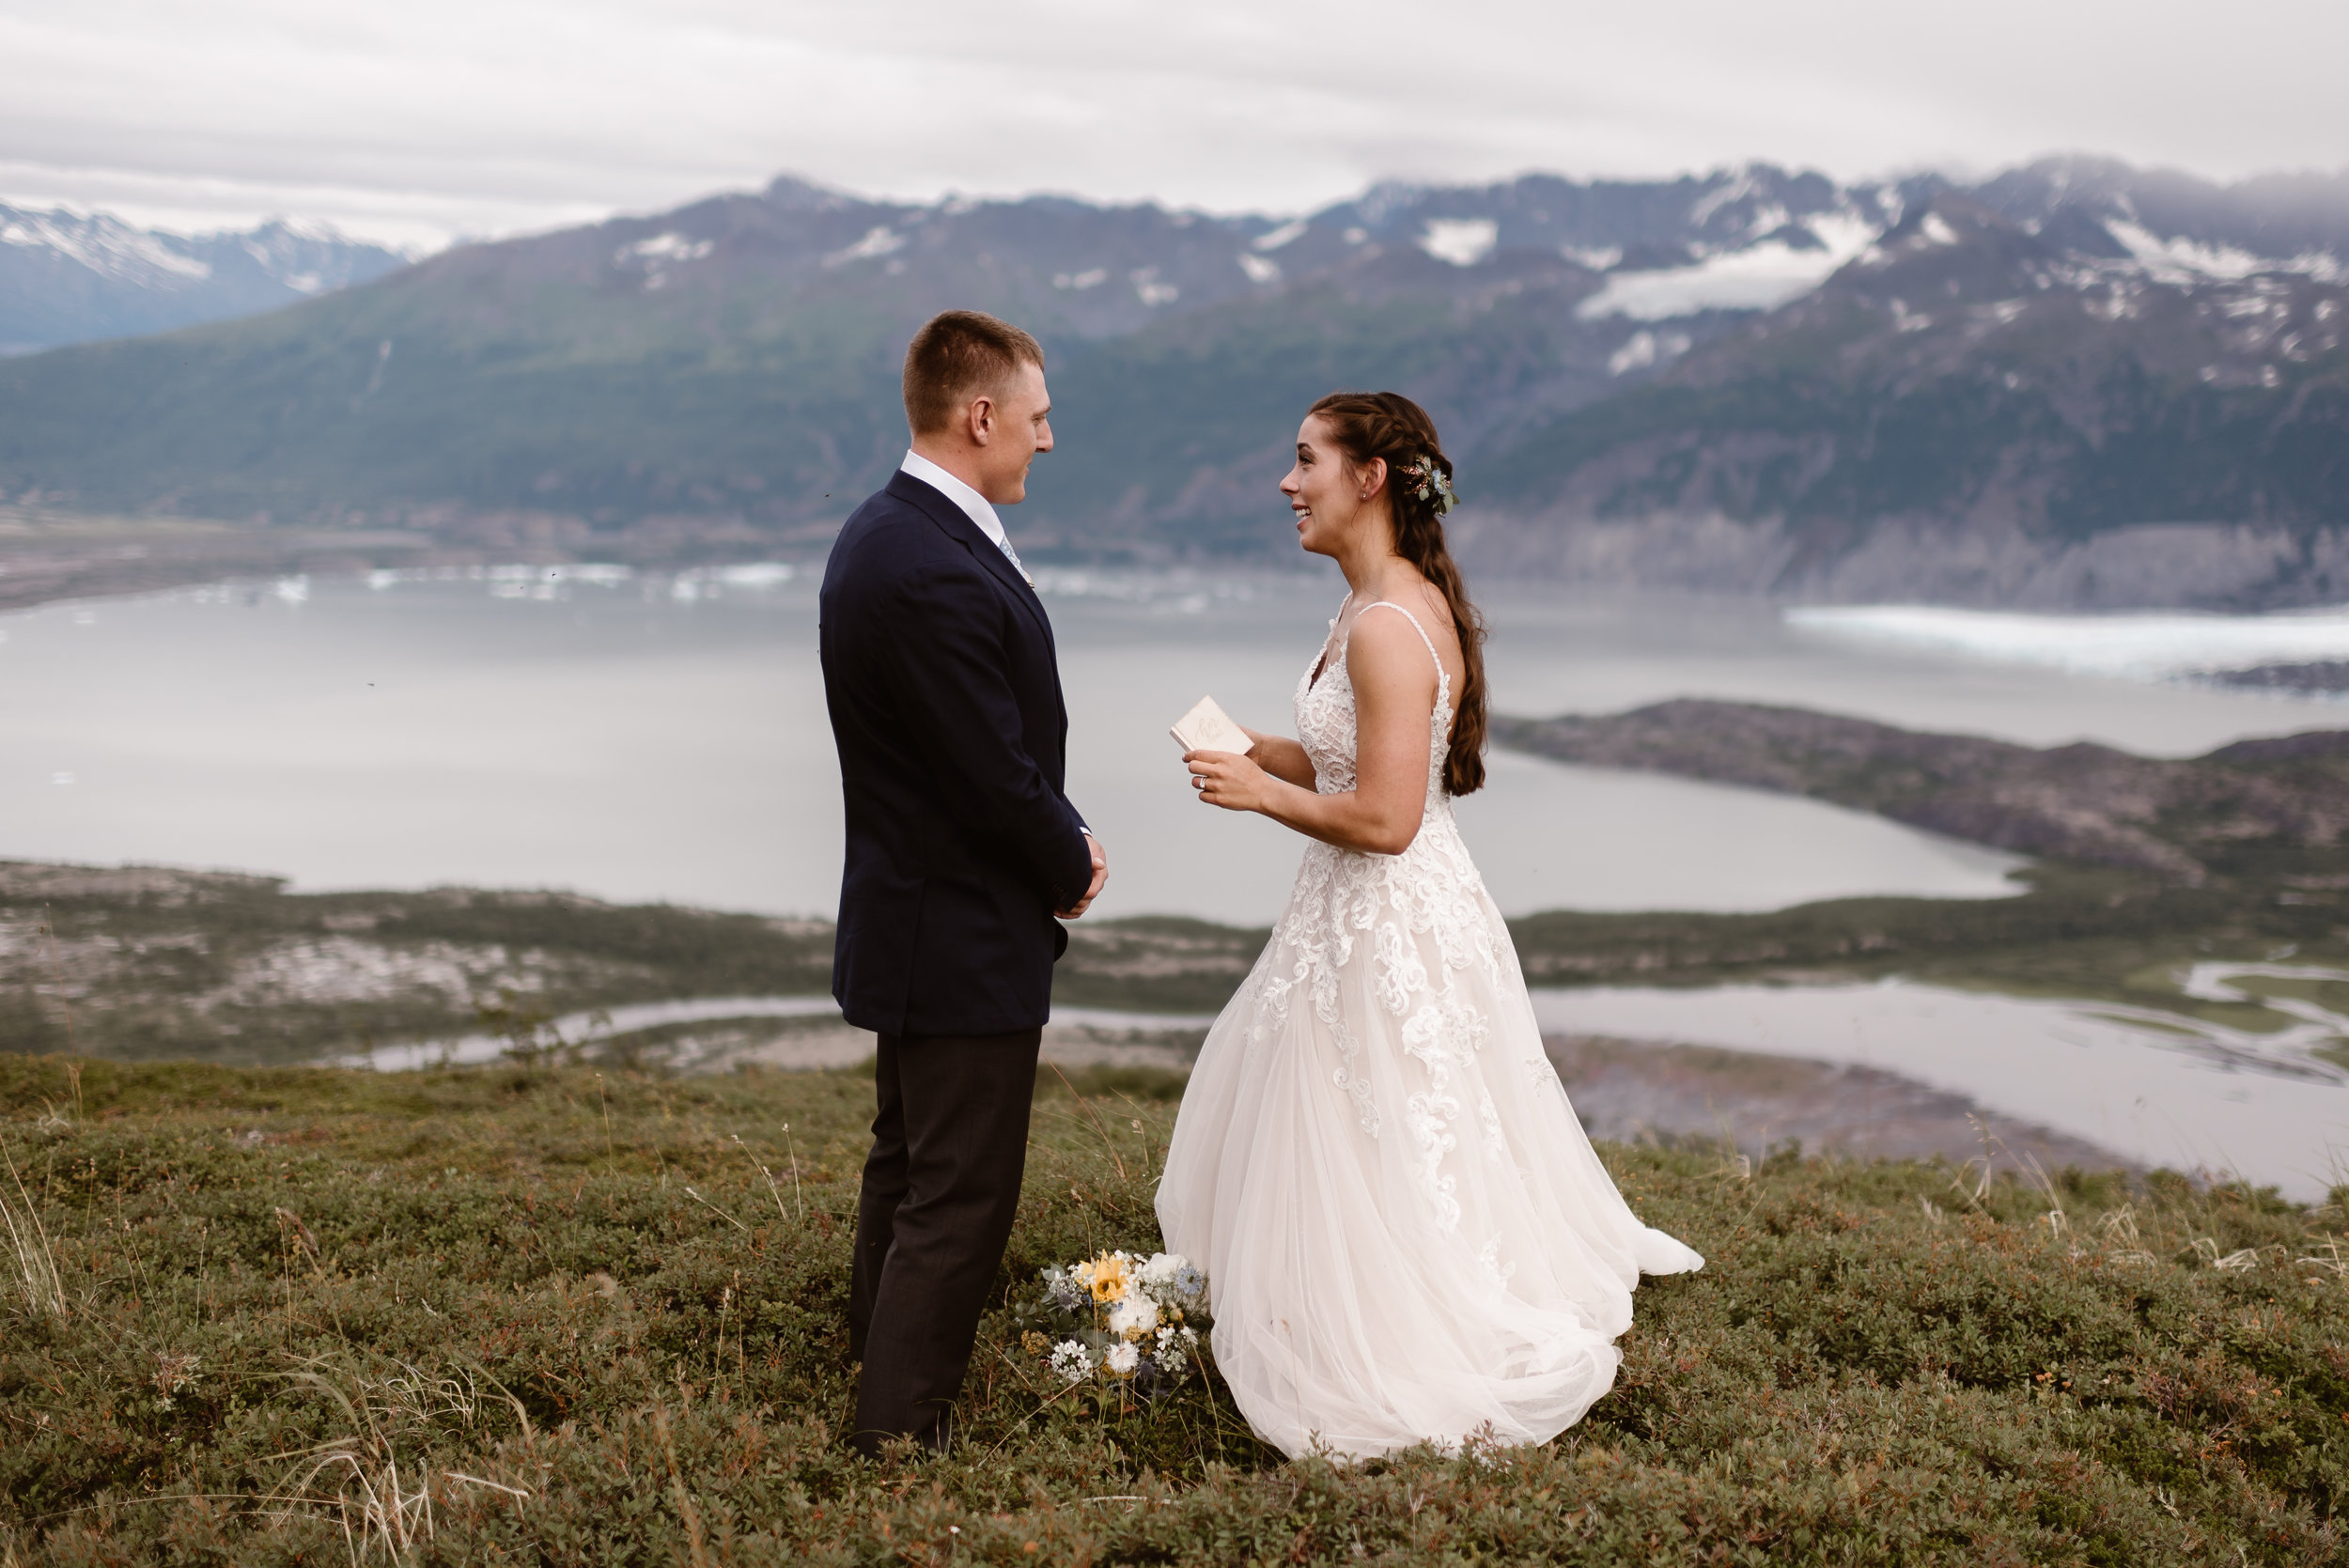 Standing in front of a glacial lake, wild Alaskan mountains, and in a field of green grass, Jordyn reads her vows to her soon-to-be-husband Connor. Connor listens intently in this elopement picture captured by Adventure Instead, Alaska elopement photographers.